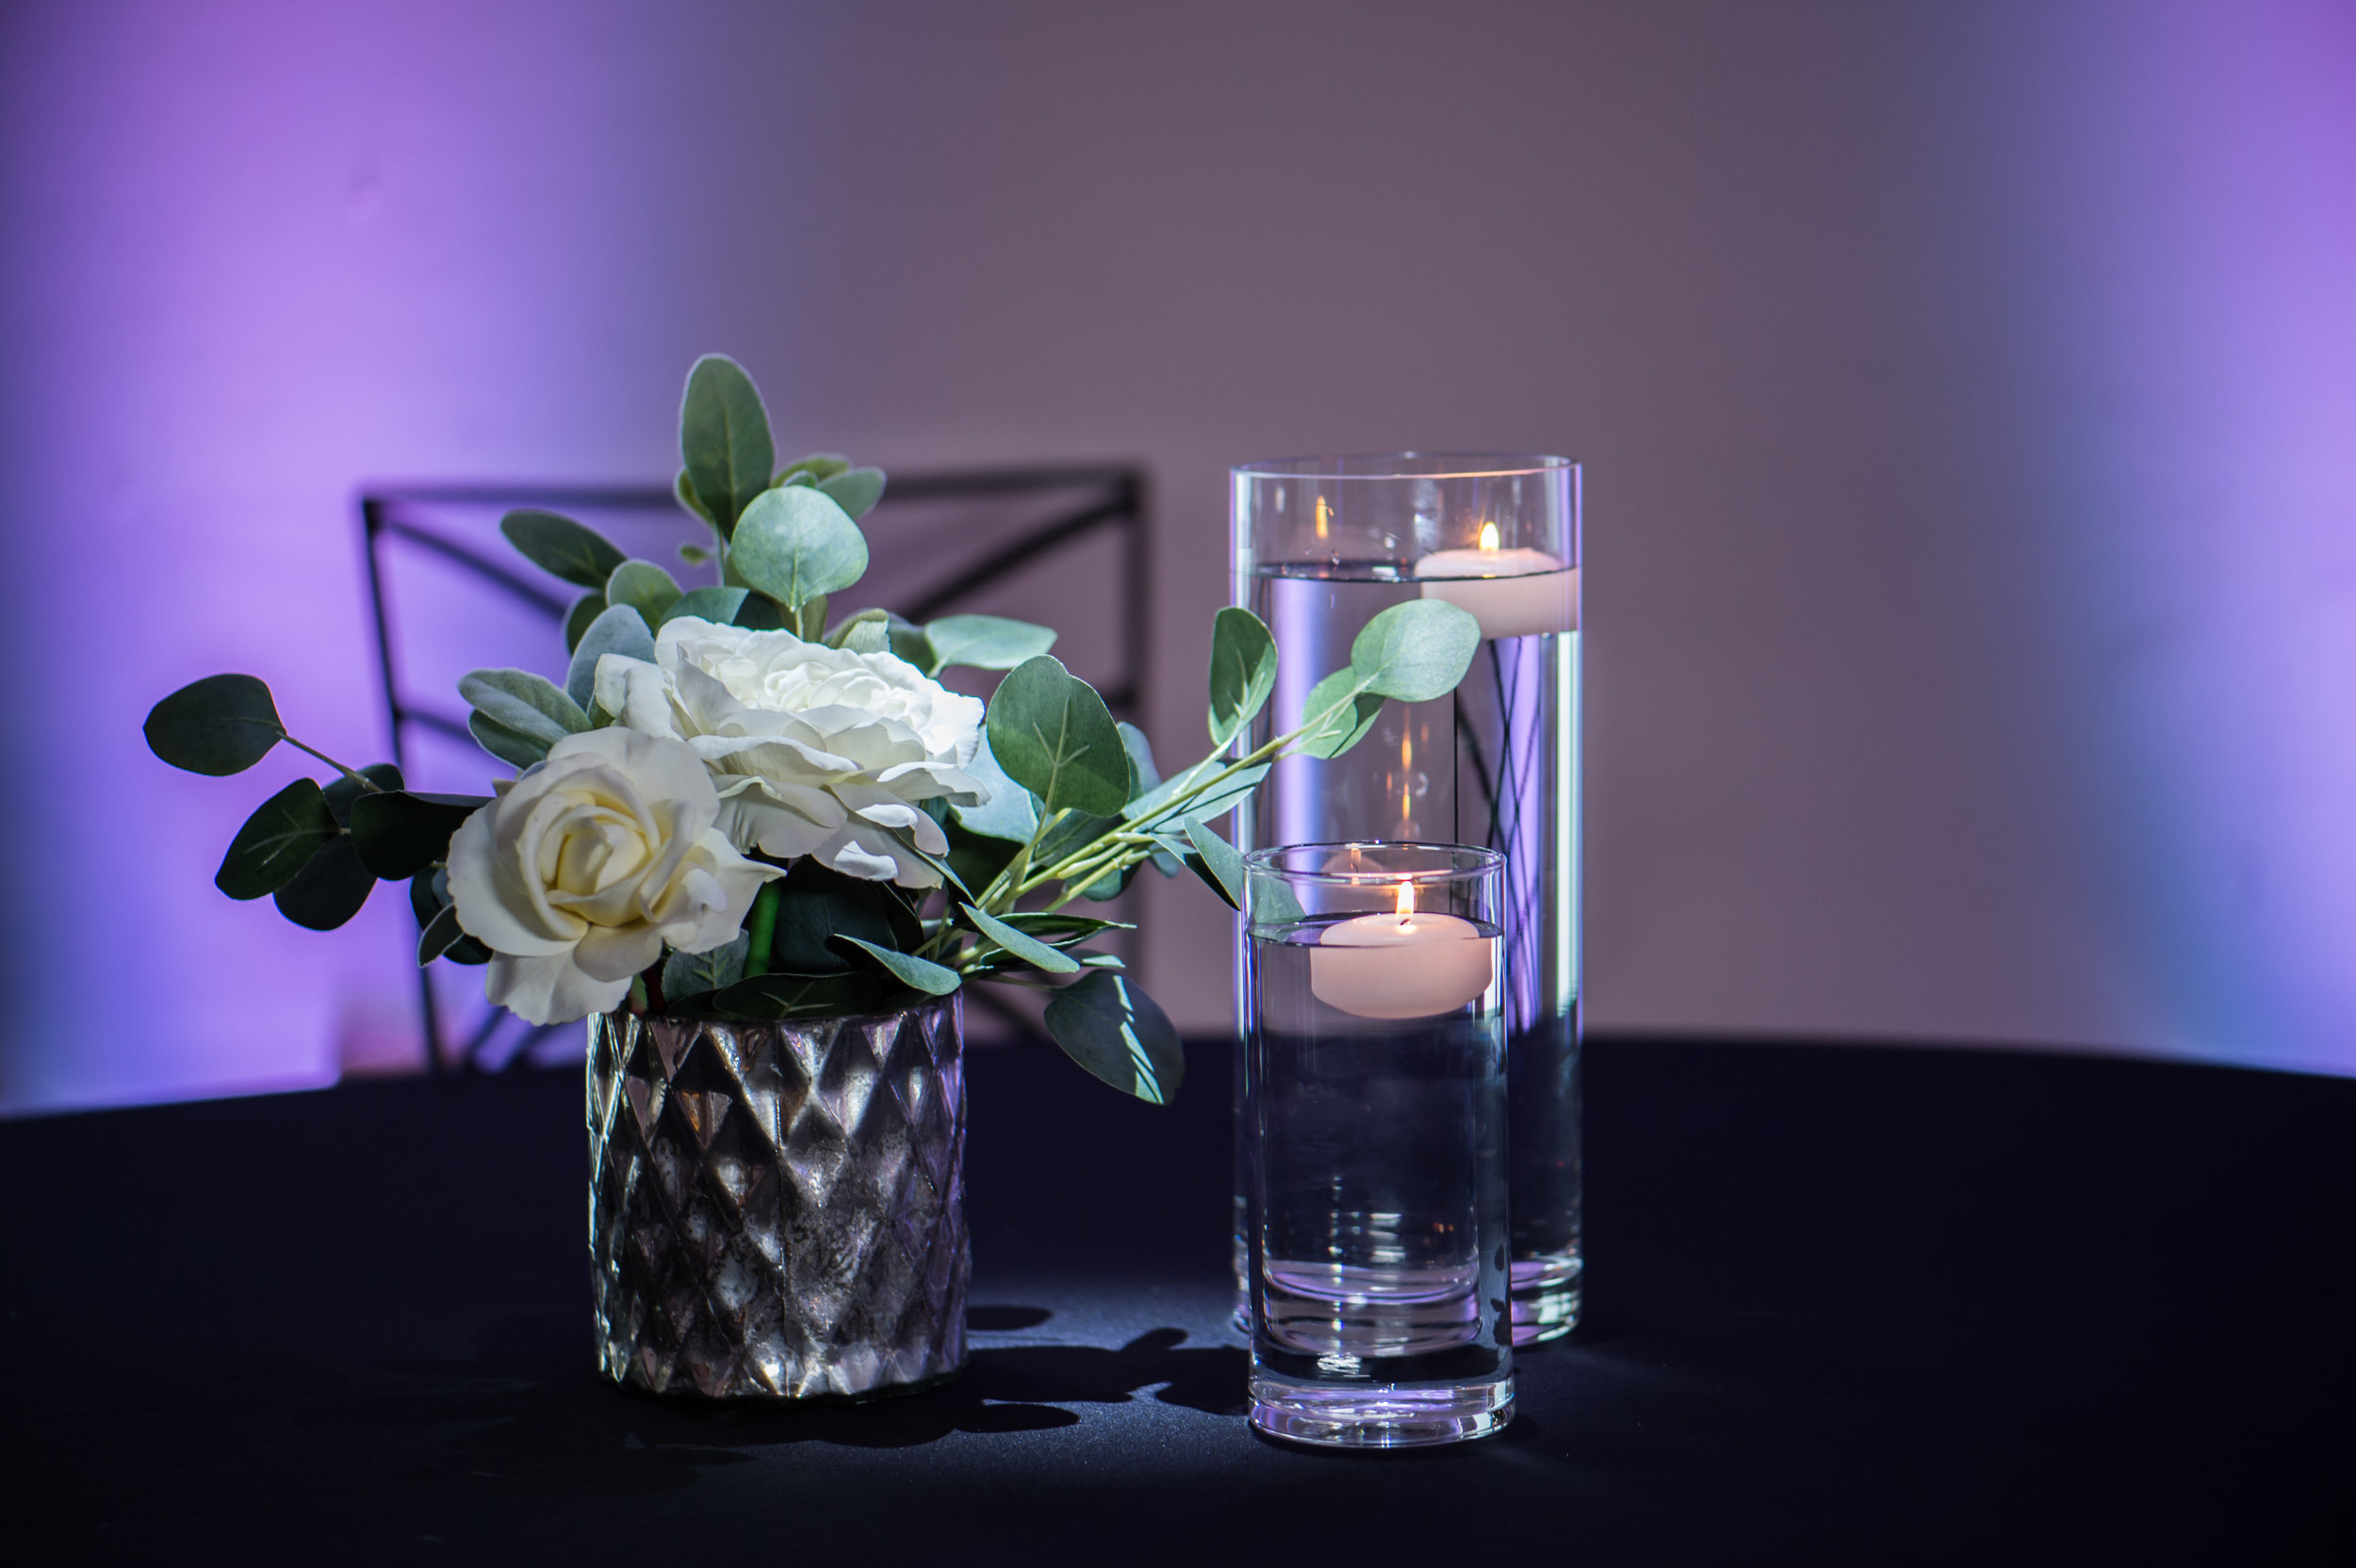 Silver White with Eucalyptus Floating Candles.jpg